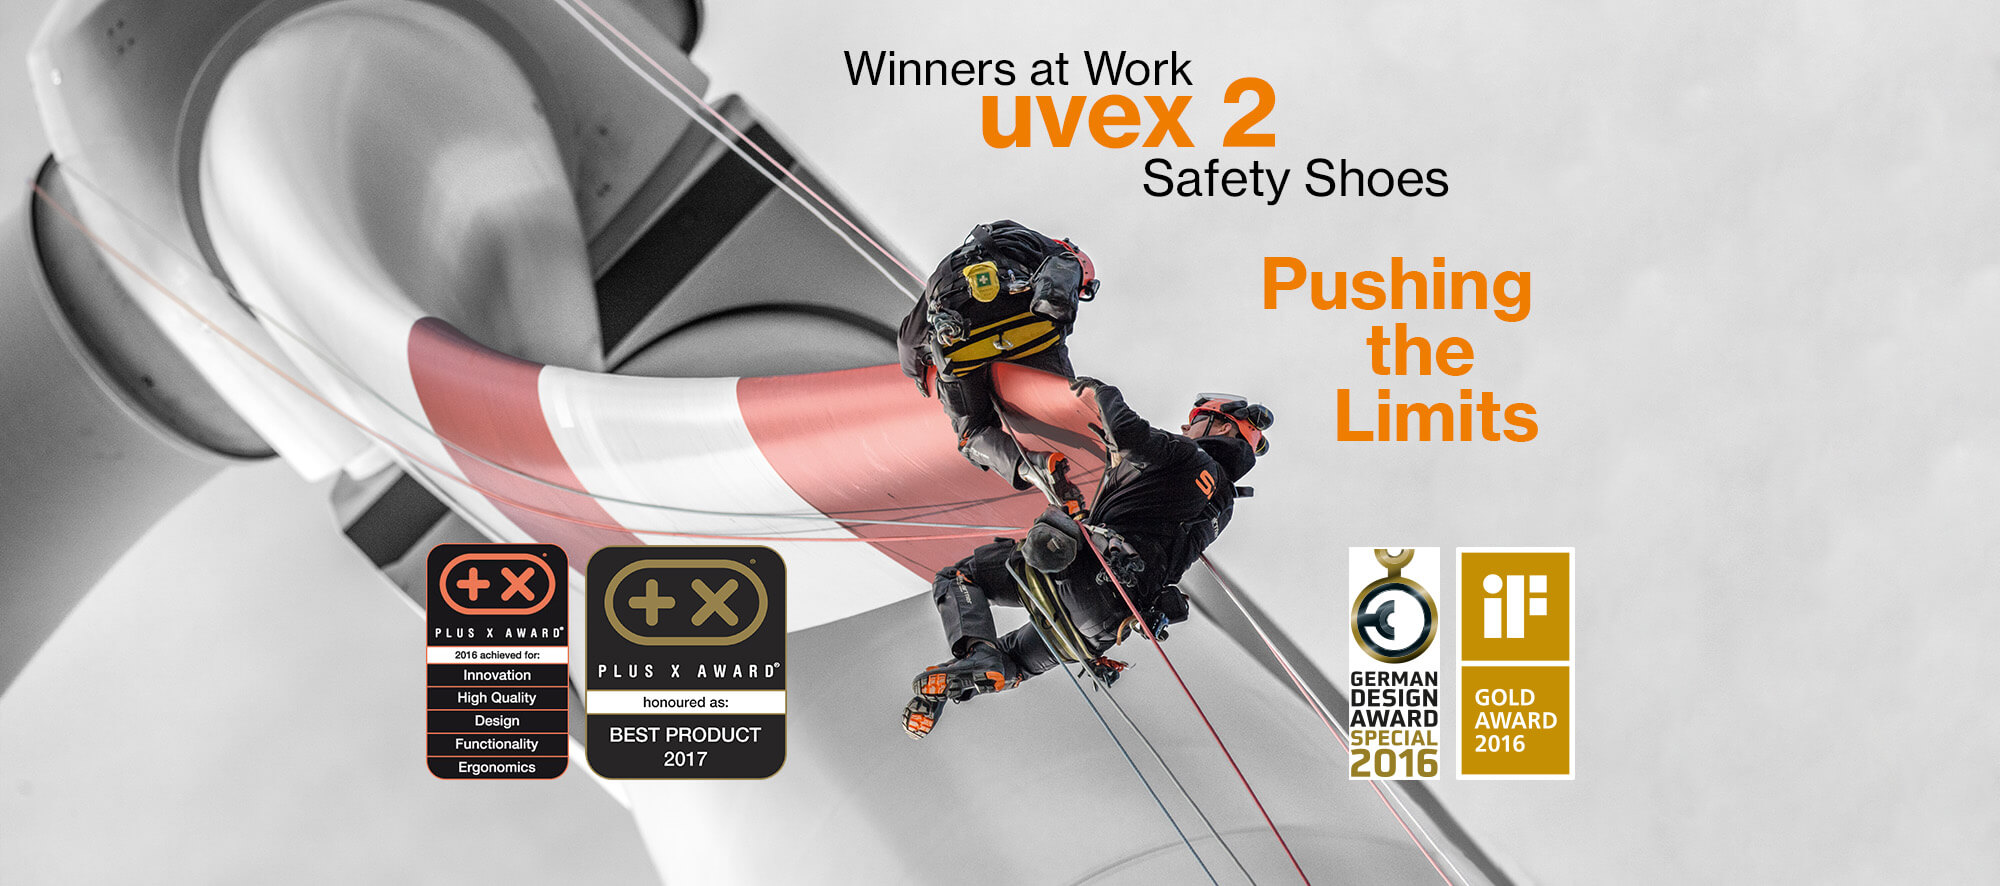 uvex 2 safety shoes awarded winners at work